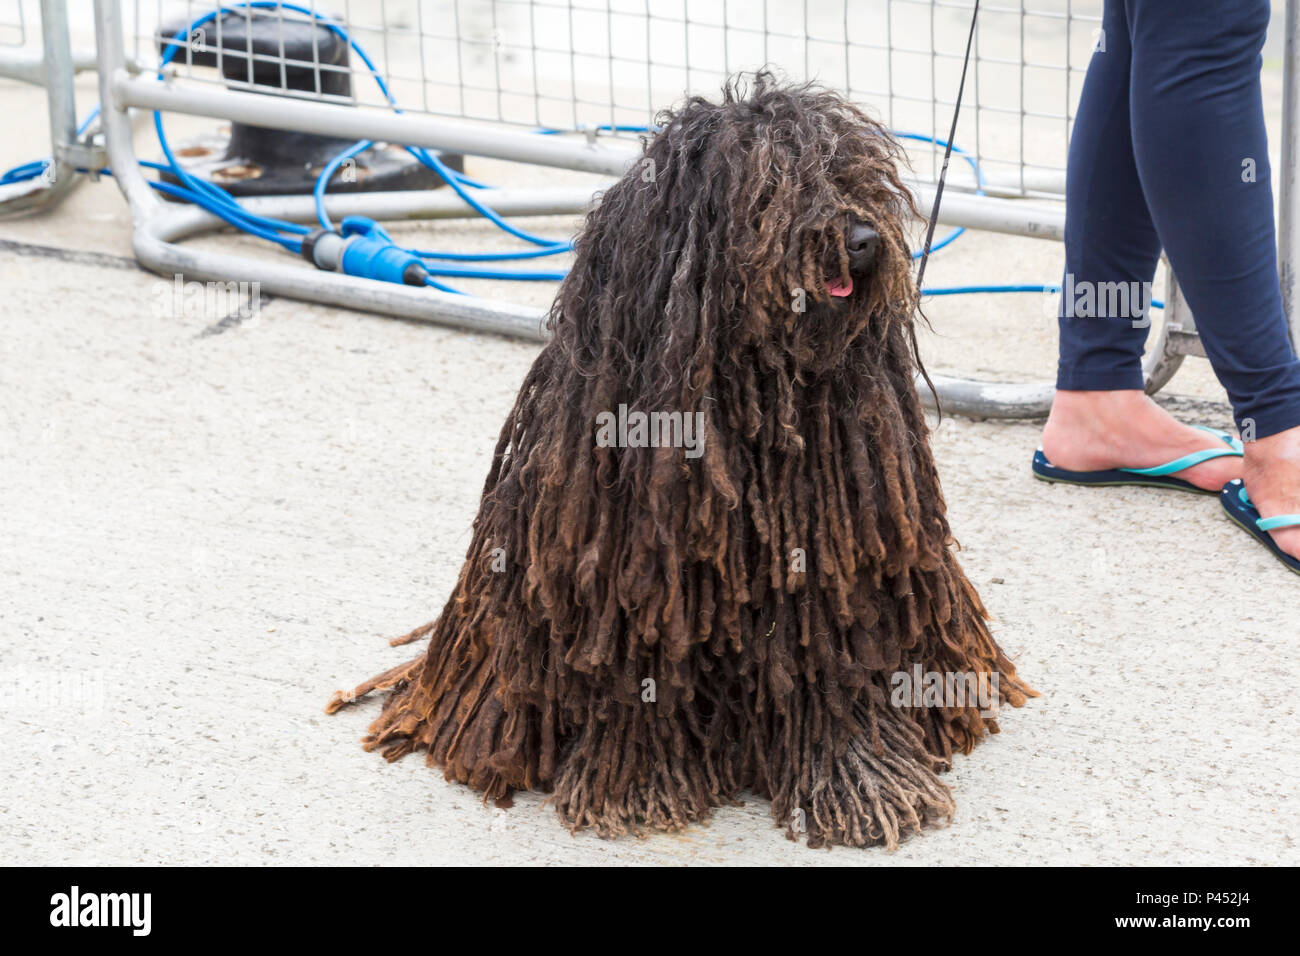 Hungarian puli dog, also known as mop dog, at Poole, Dorset UK in June - Stock Image